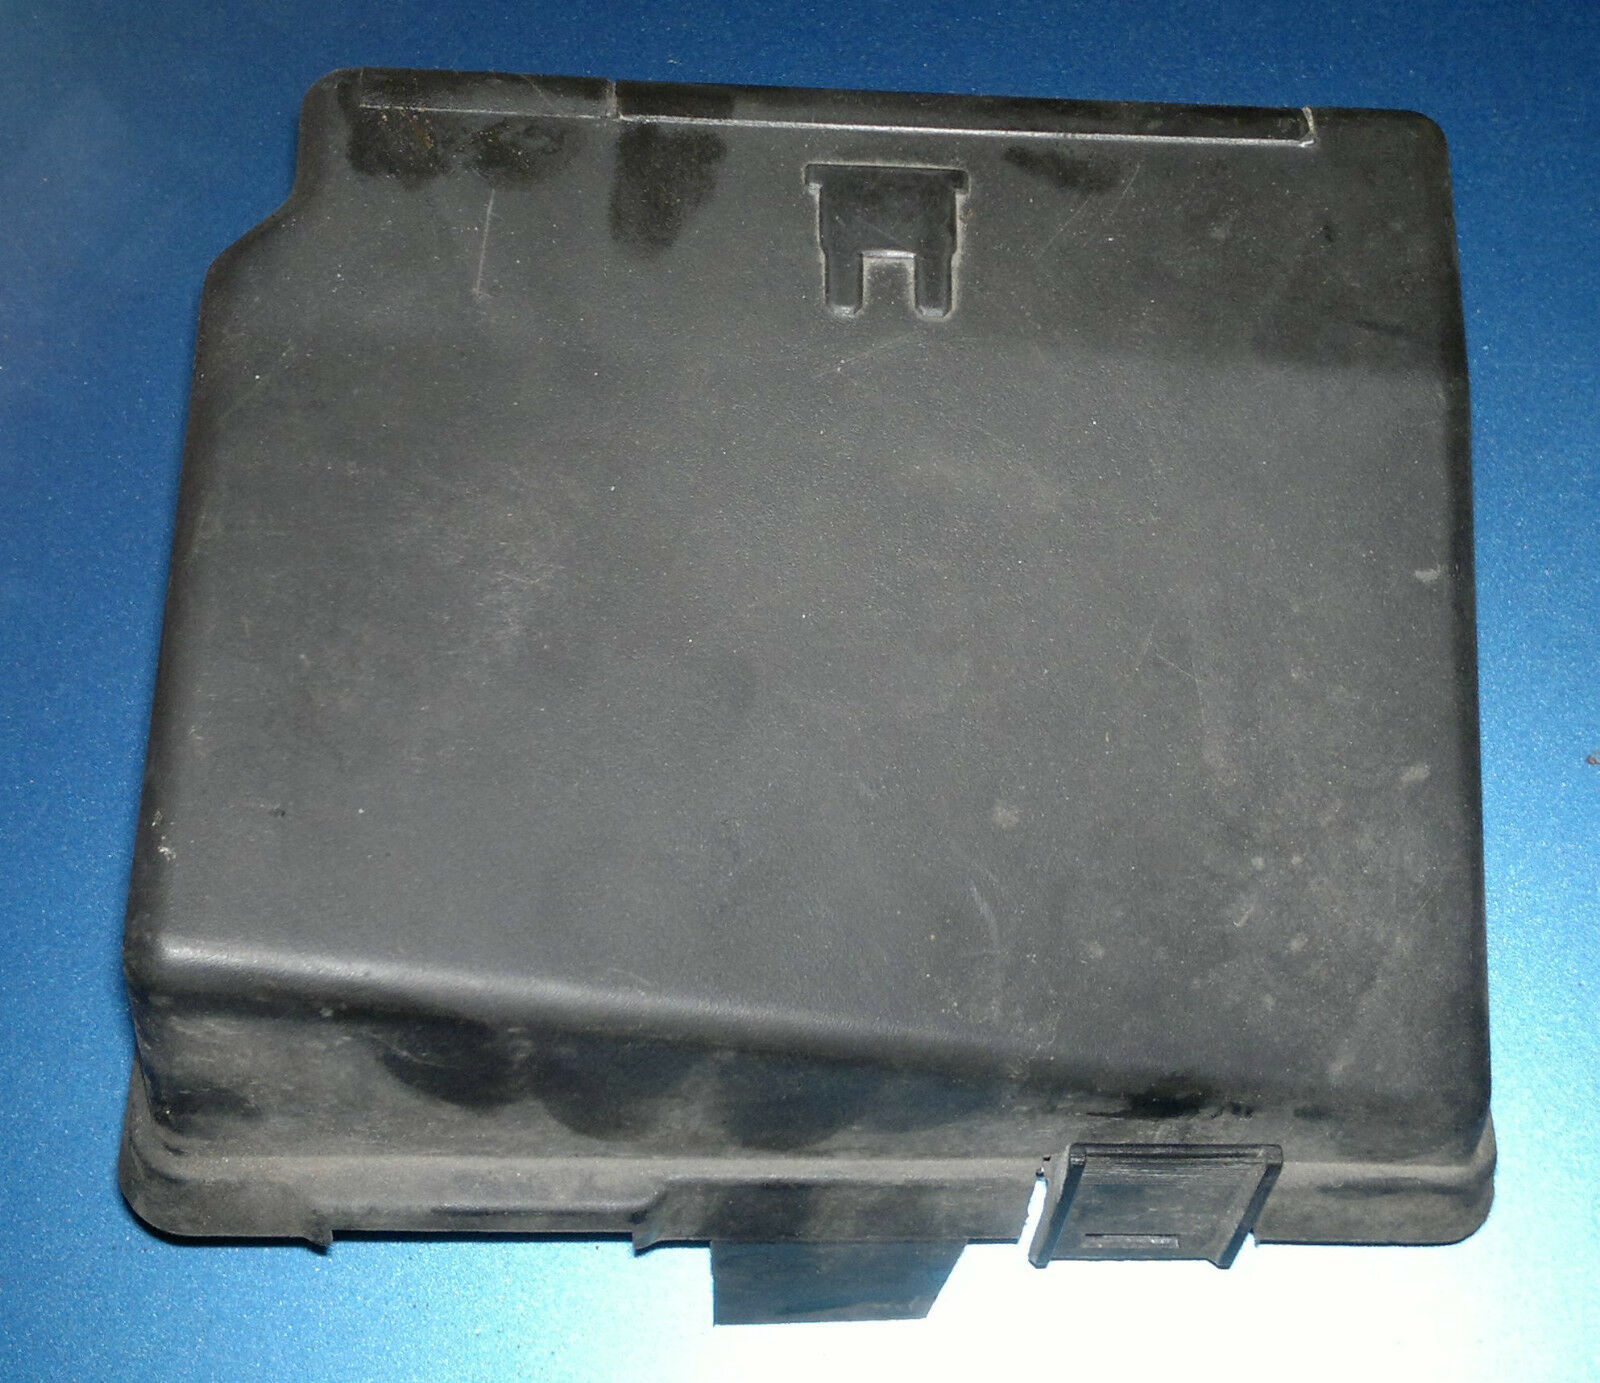 Peugeot 206 Fuse Box Cover Lid 1998 06 All Models Part Number Fiat Scudo 1 Of See More